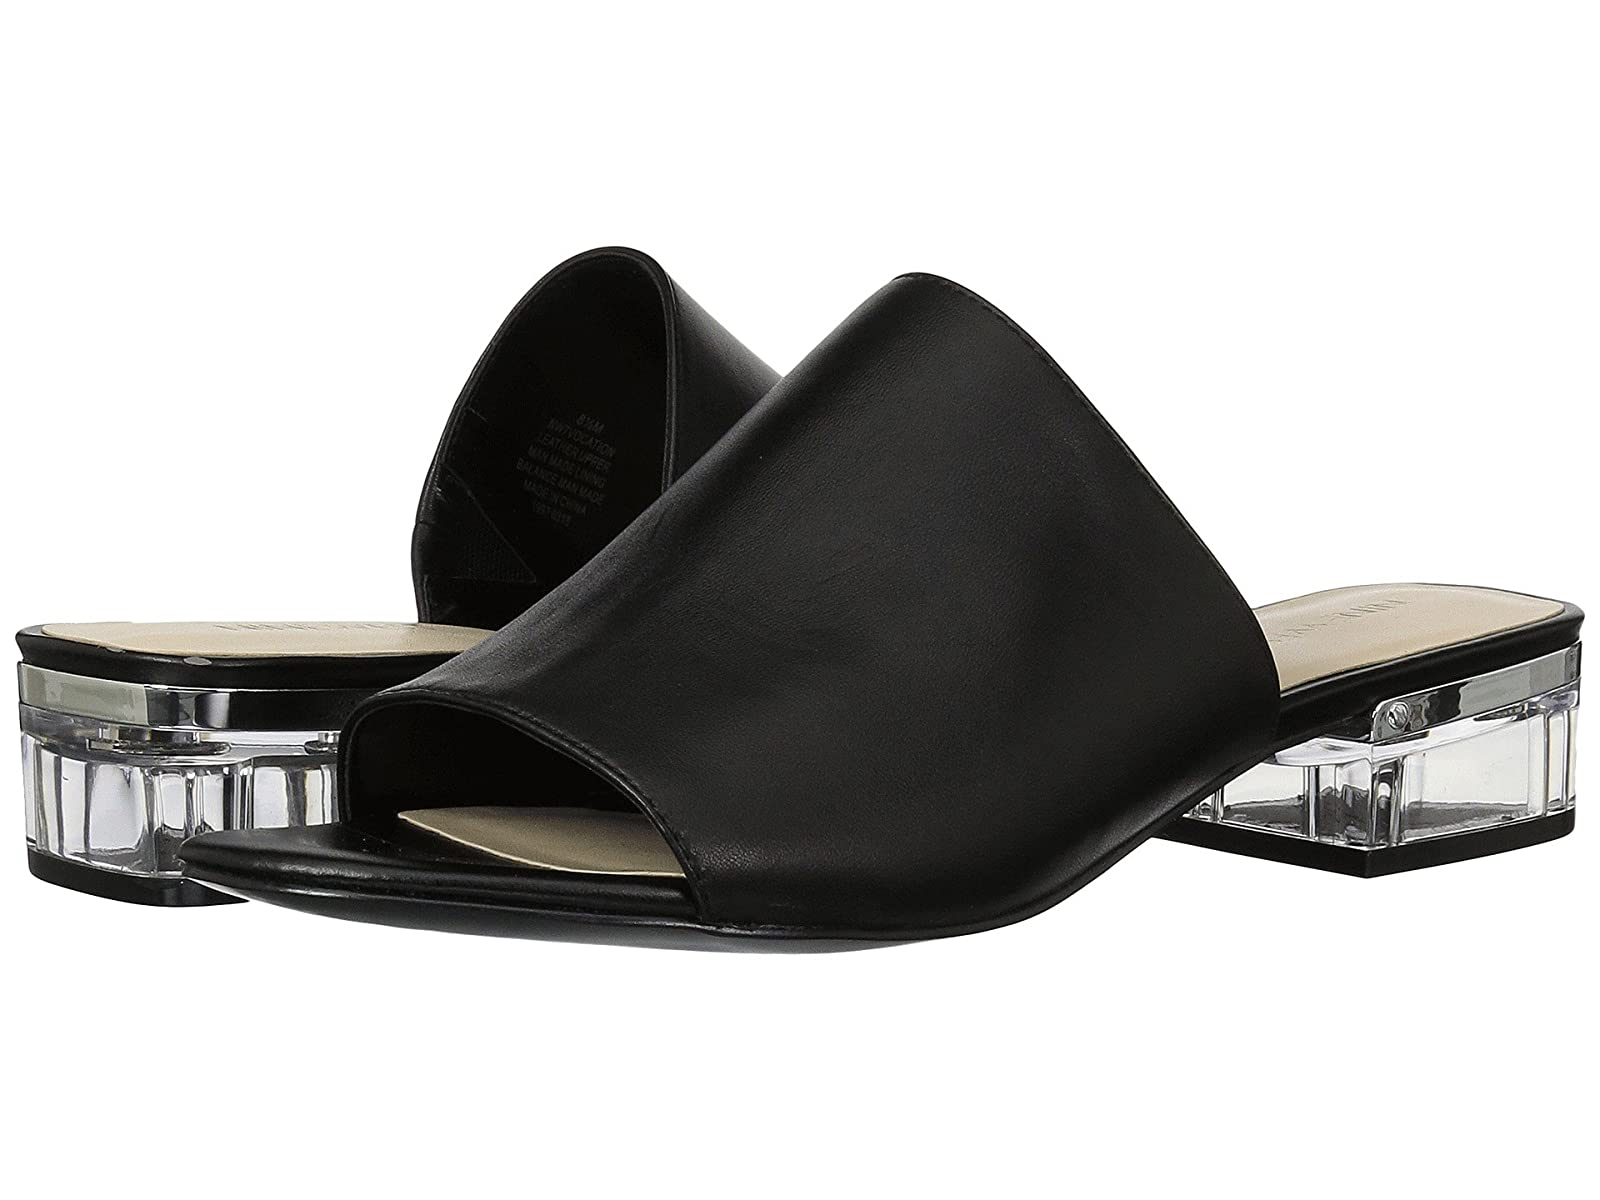 Nine West VocationCheap and distinctive eye-catching shoes